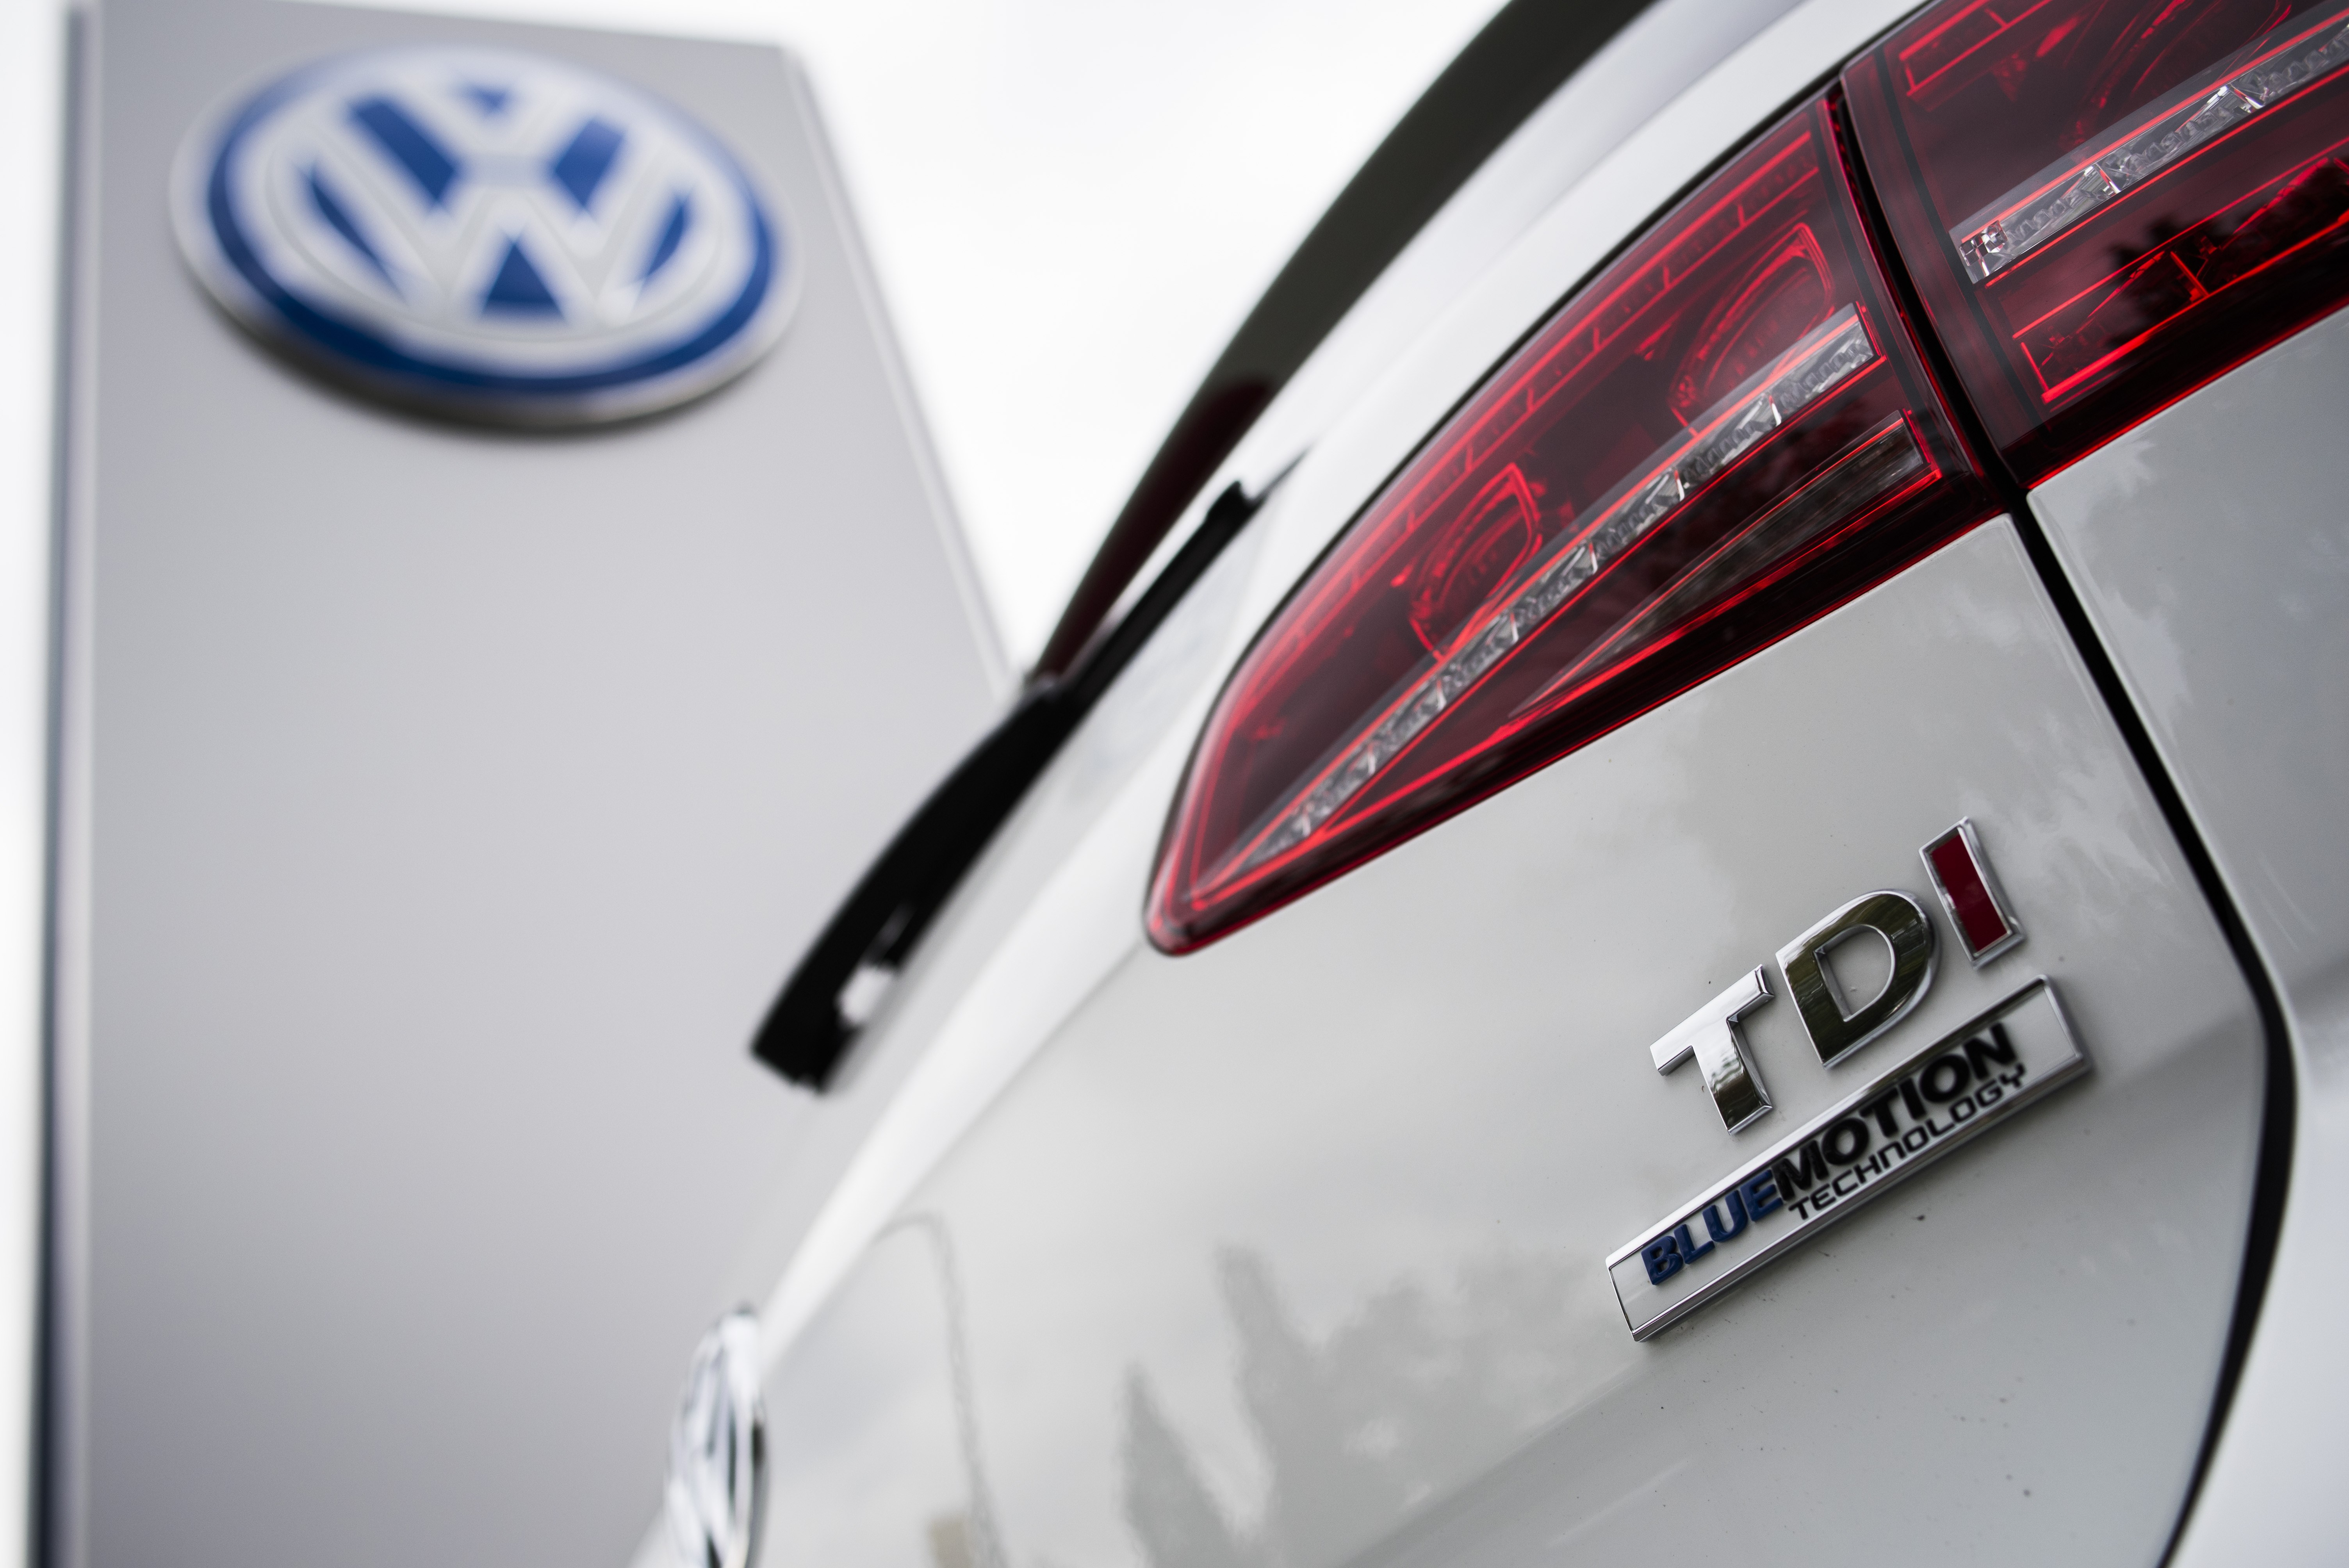 GERMANY-US-AUTOMOBILE-VW-INDUSTRY